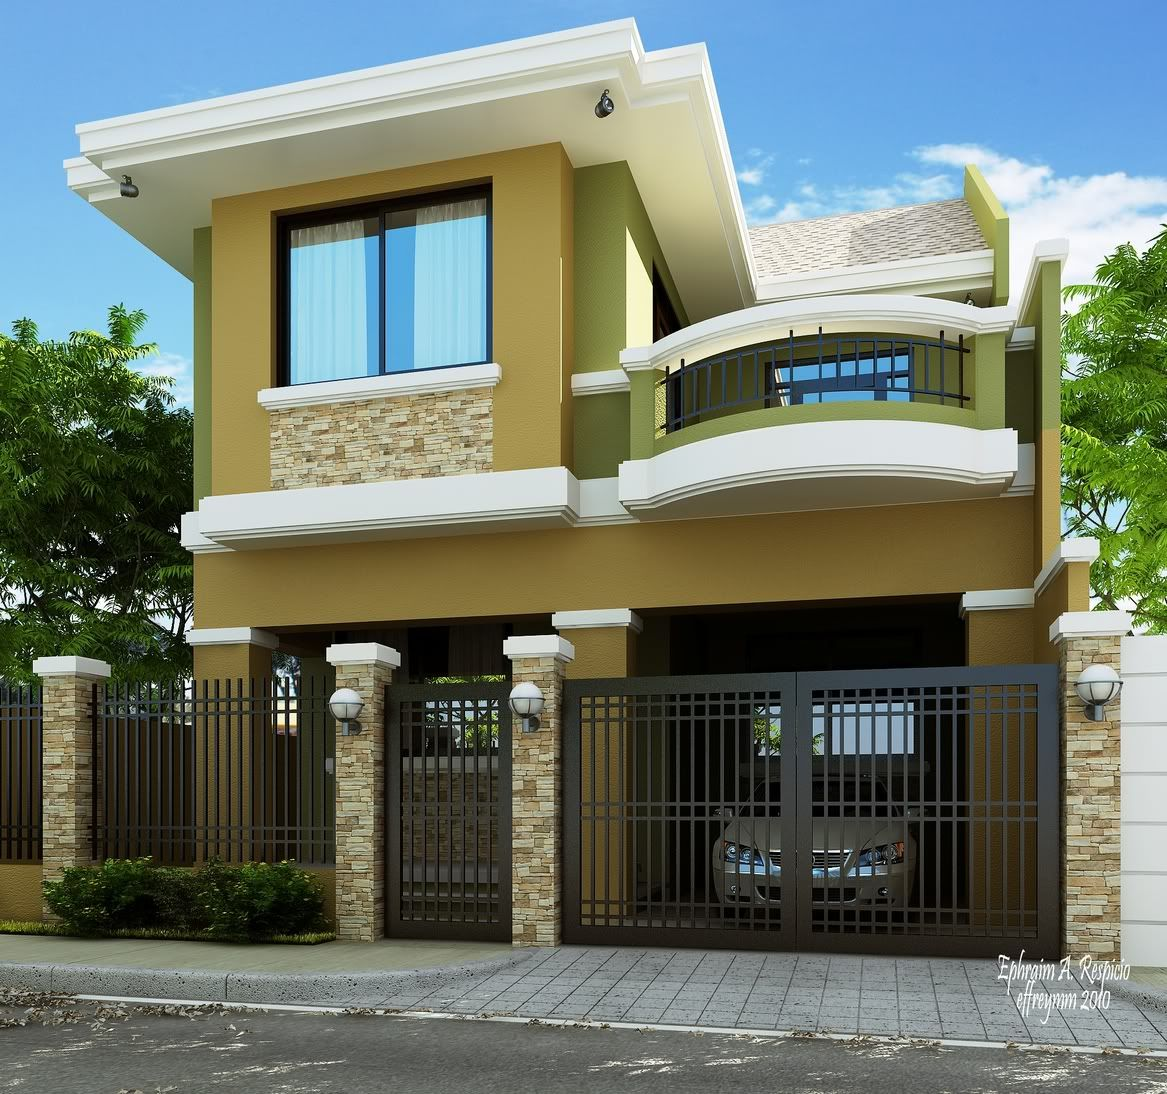 Small house exterior design philippines at home interior designing story casa linda also alam baloch abaloch on pinterest rh